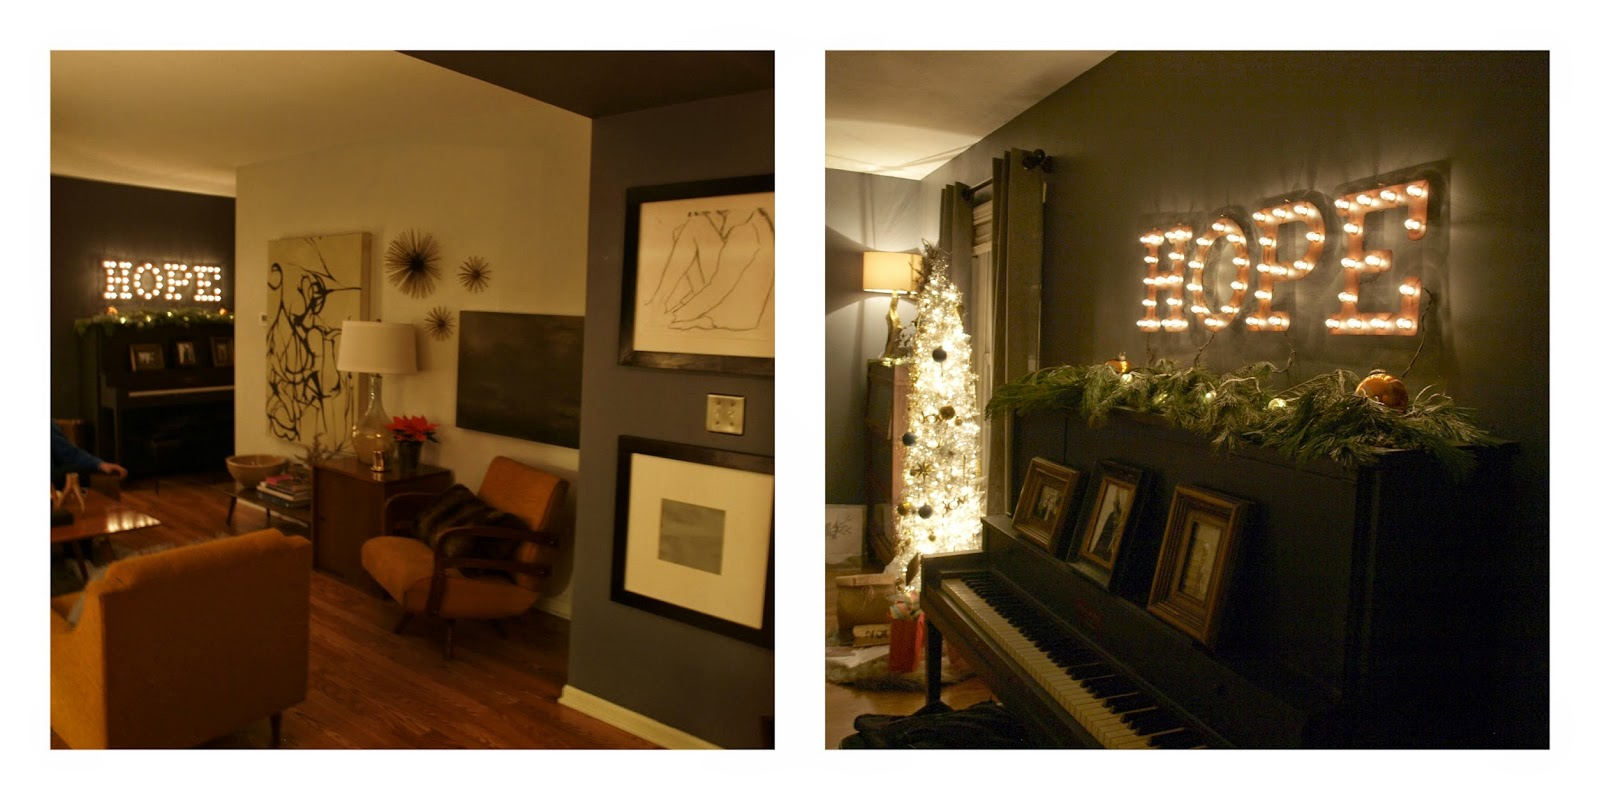 midcentury-modern-christmas-holiday-decor-decorating-piano-hope-hellolovely-hello-lovely-studio